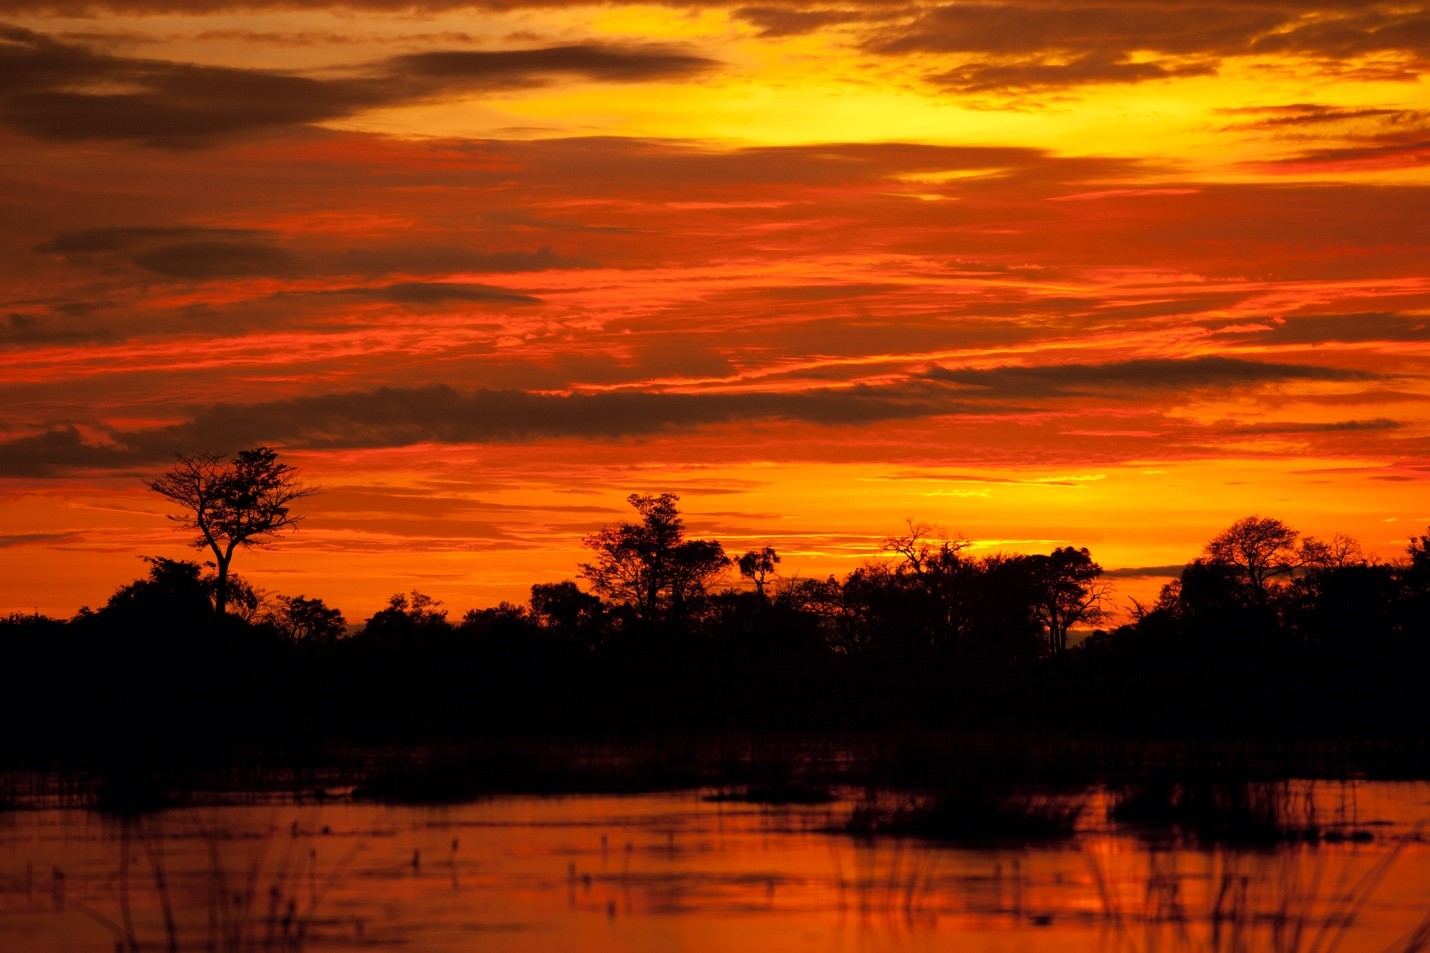 an orange and red sunset shines over the okavango delta